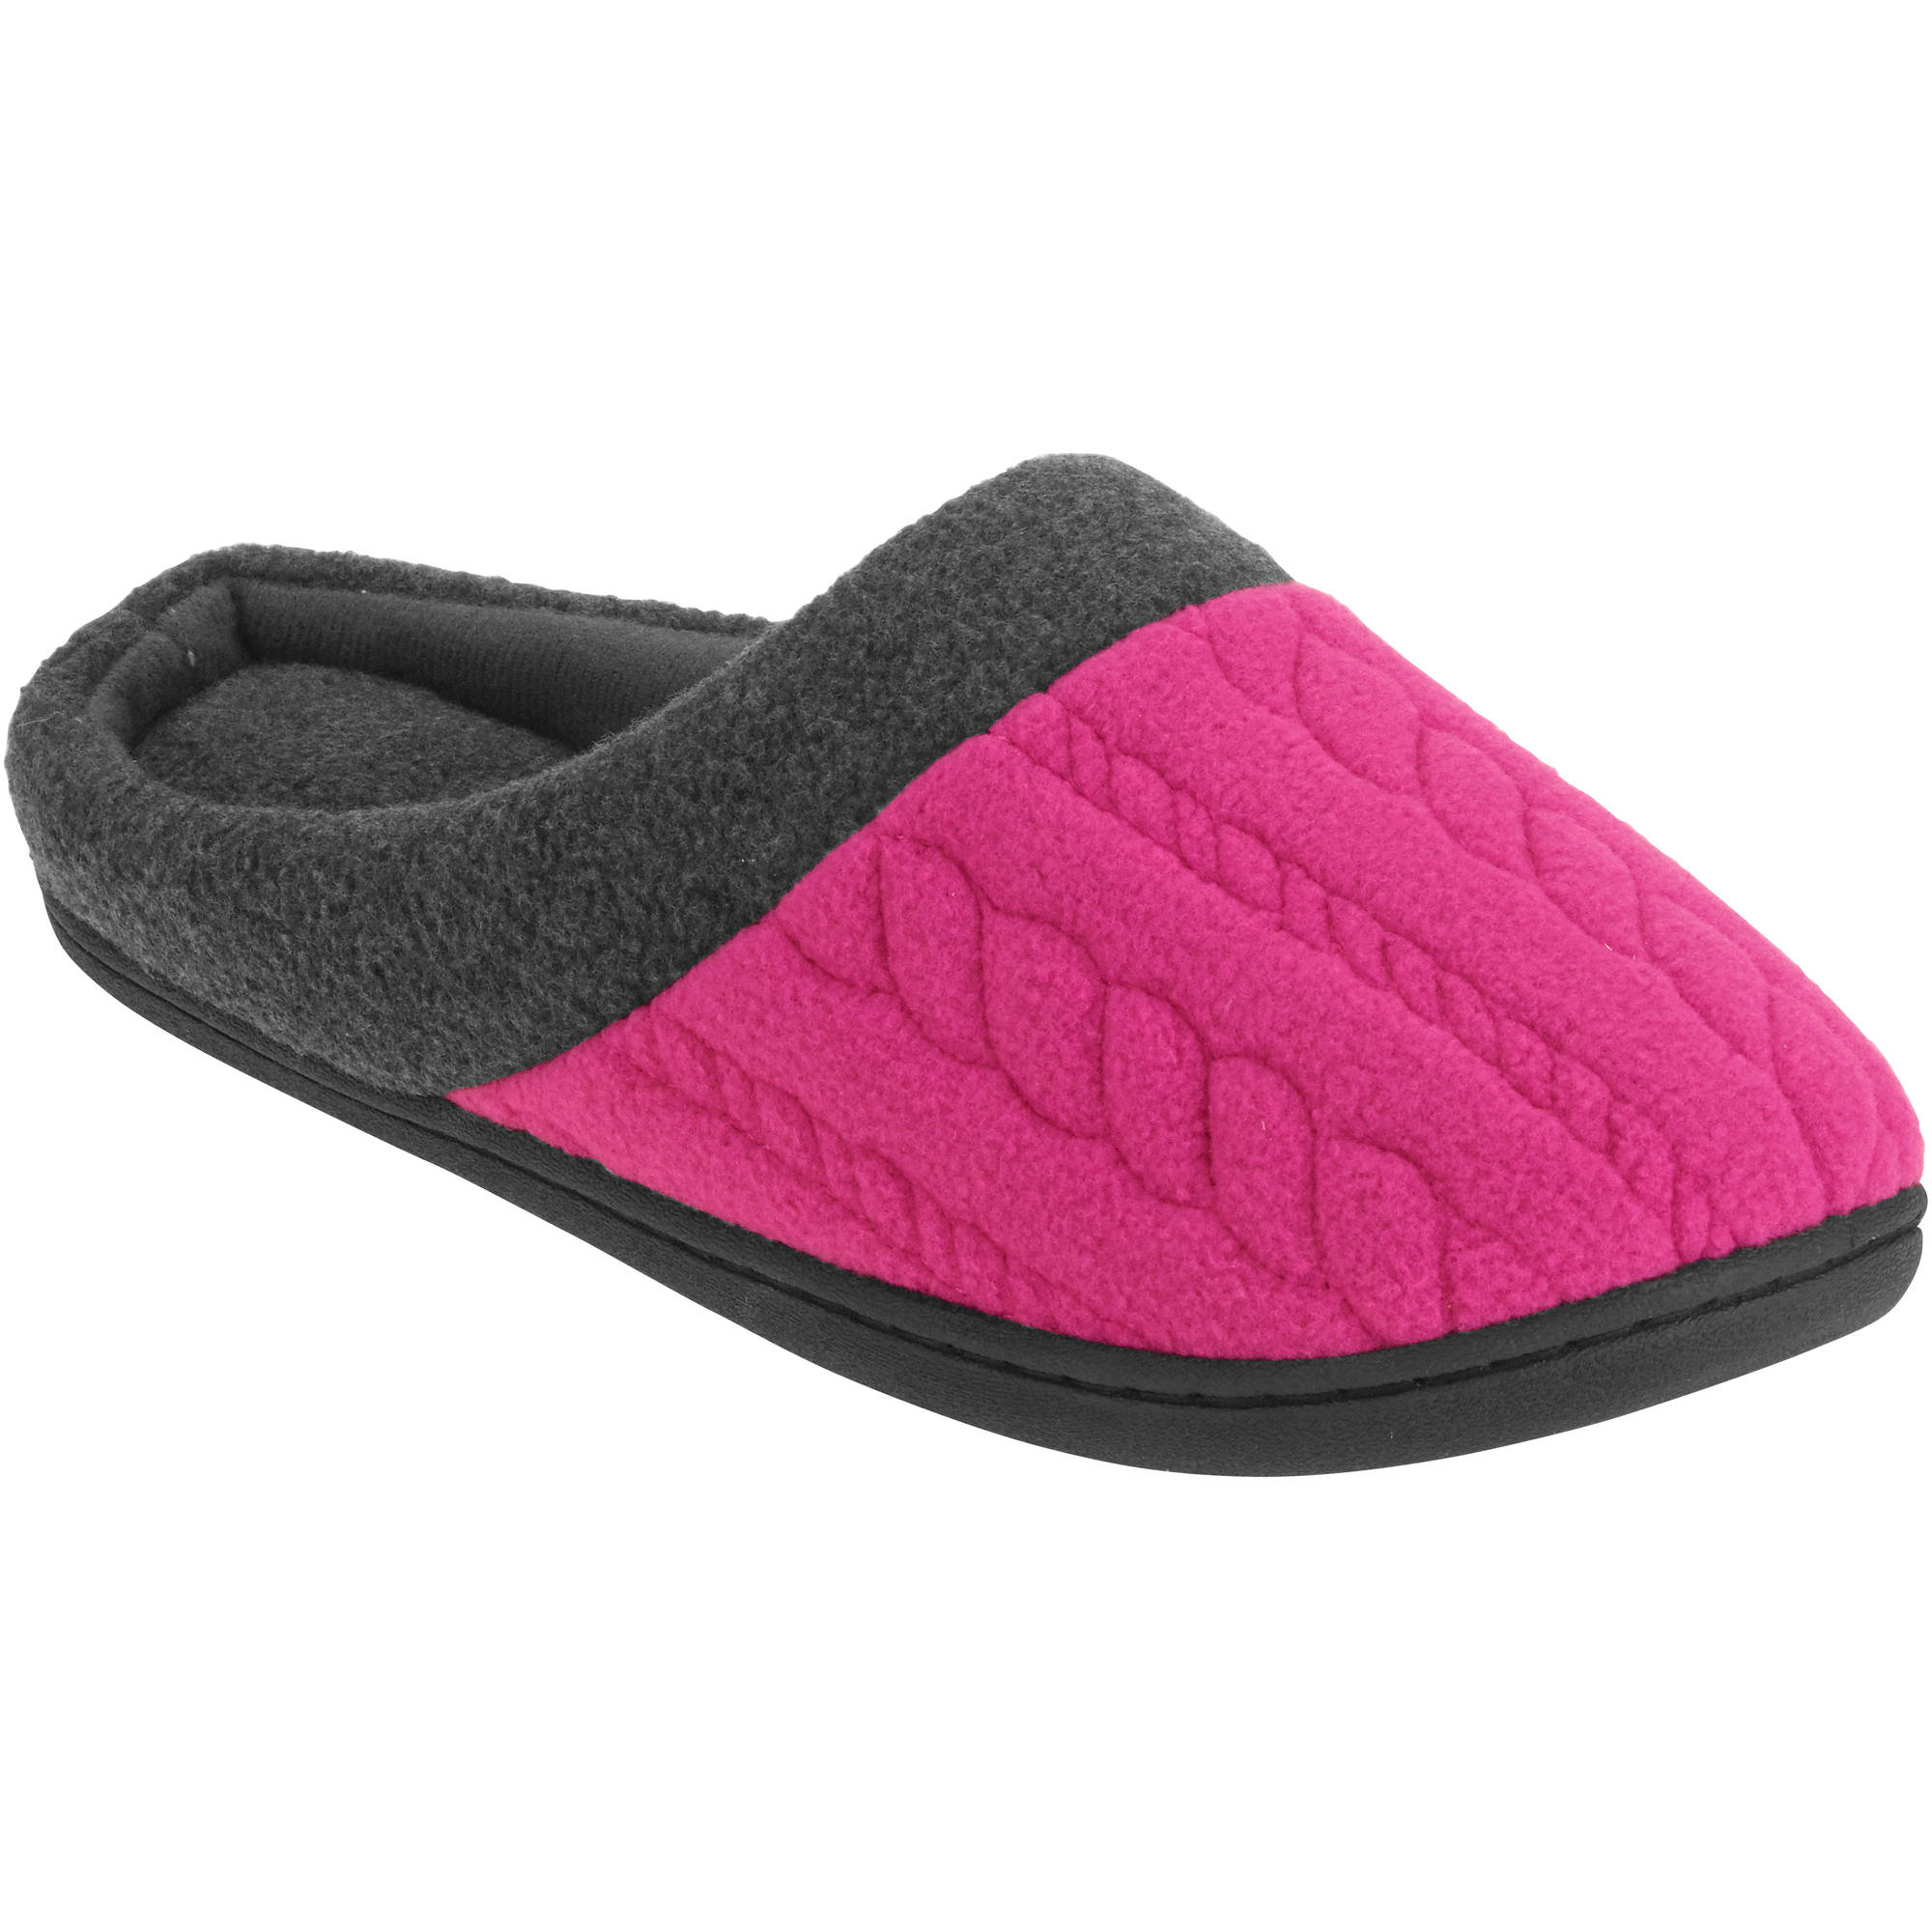 e39d3a37f99 Shoe Shack - Women s Black Chinese Mesh Slippers - Walmart.com